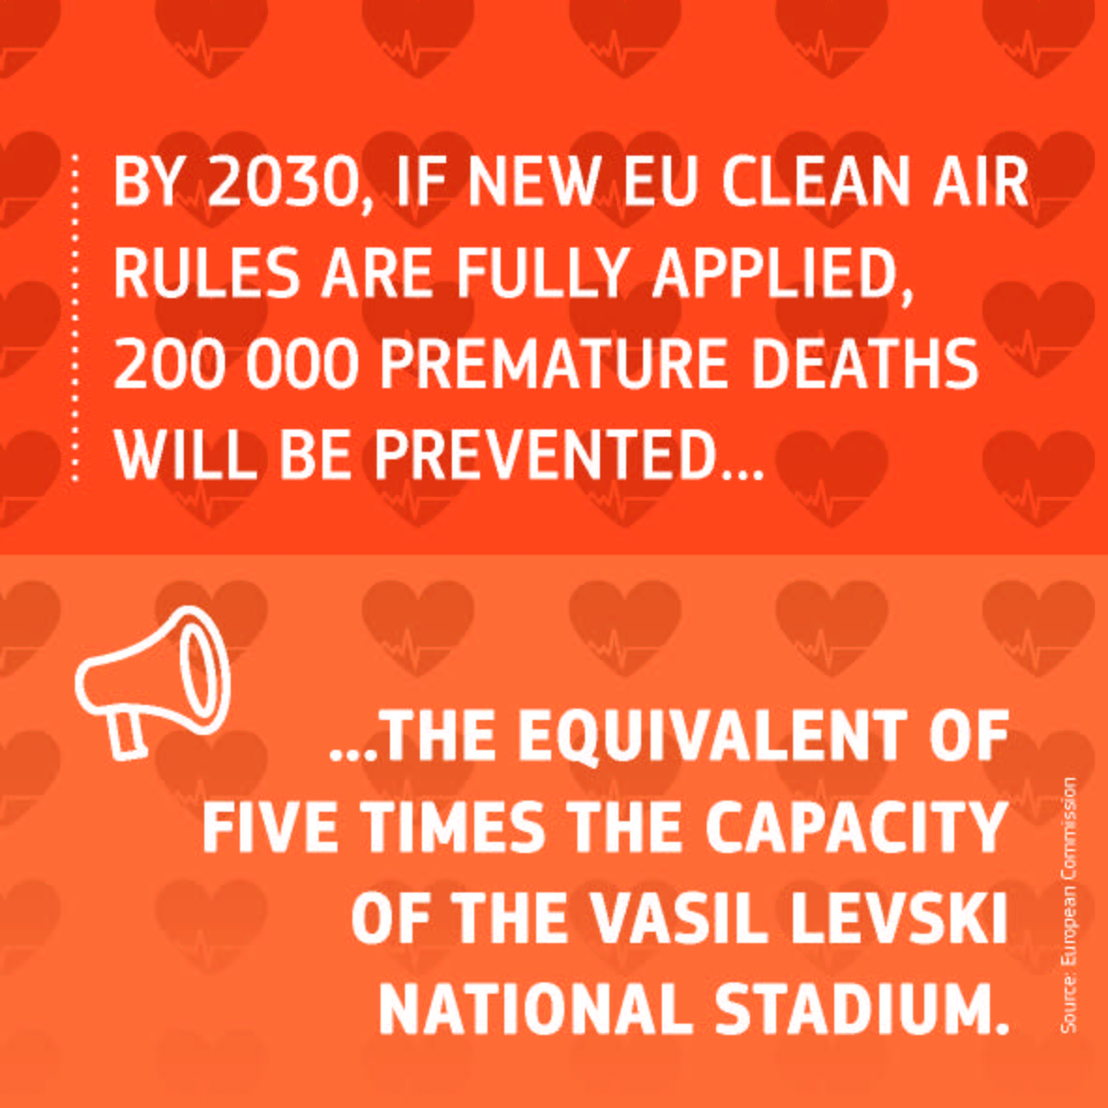 EU Clean Air Rules Against Premature Deaths